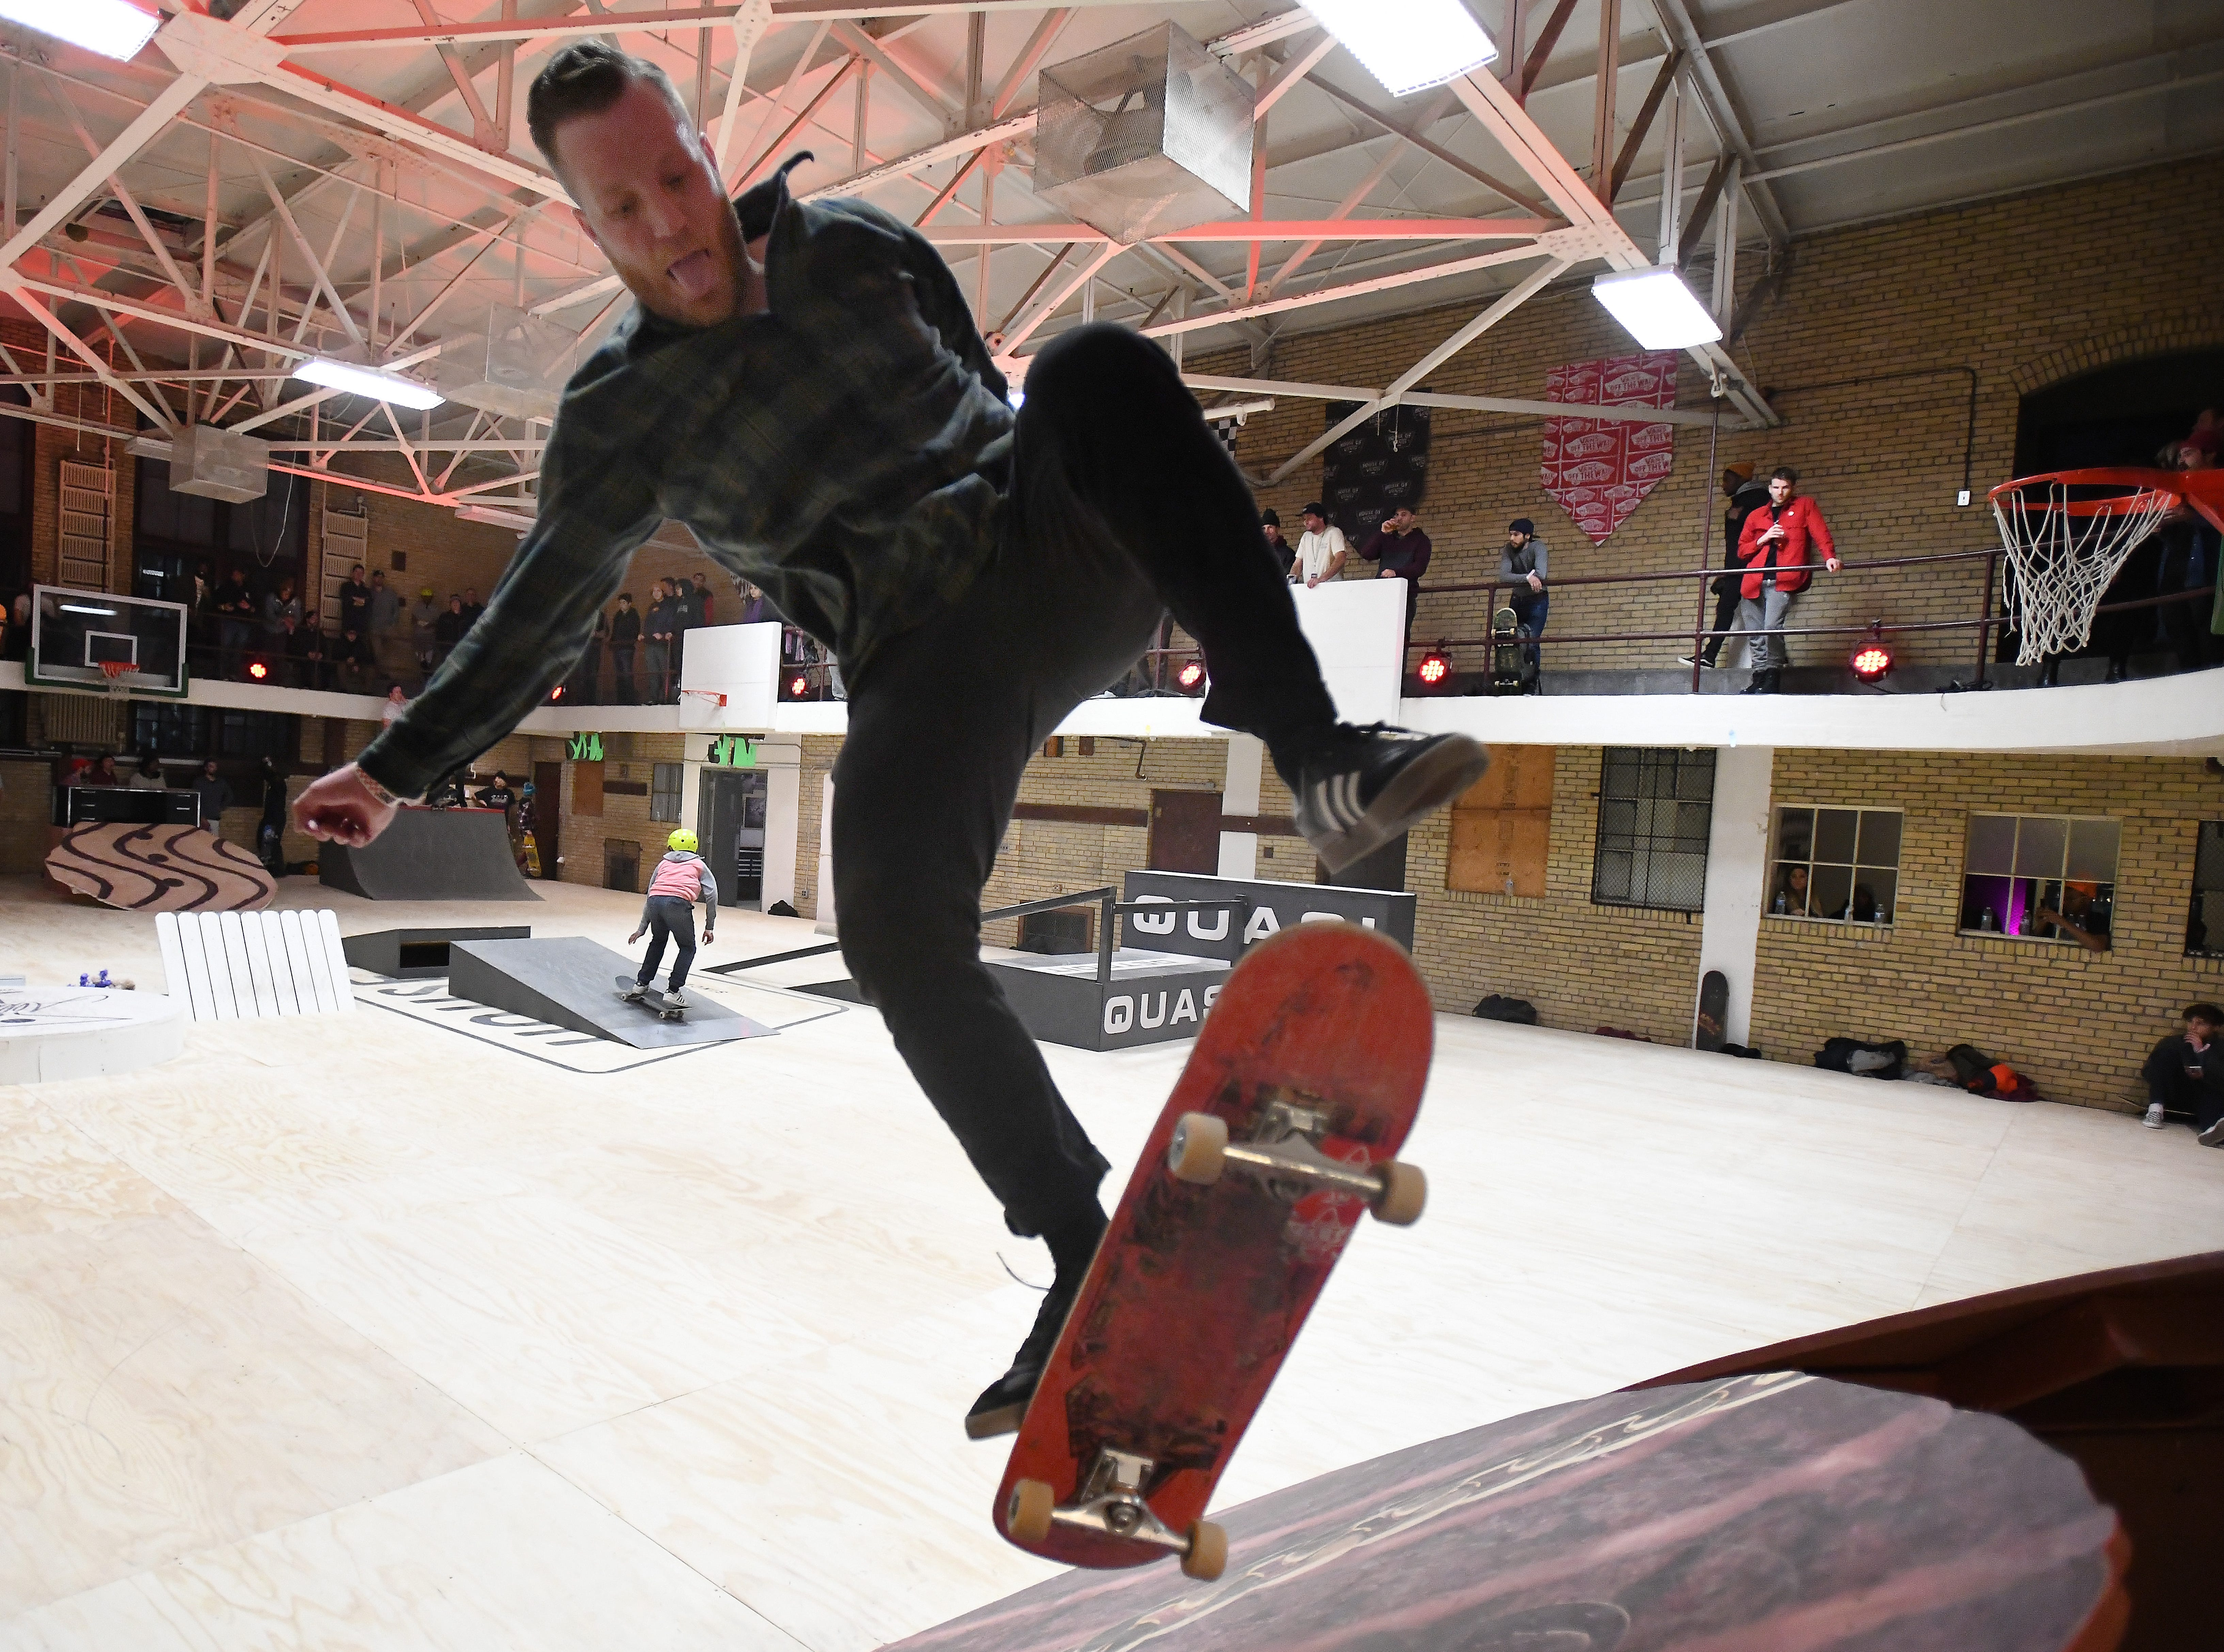 Pat Galloway of Detroit works at a pop-up skate park at the House of Vans.